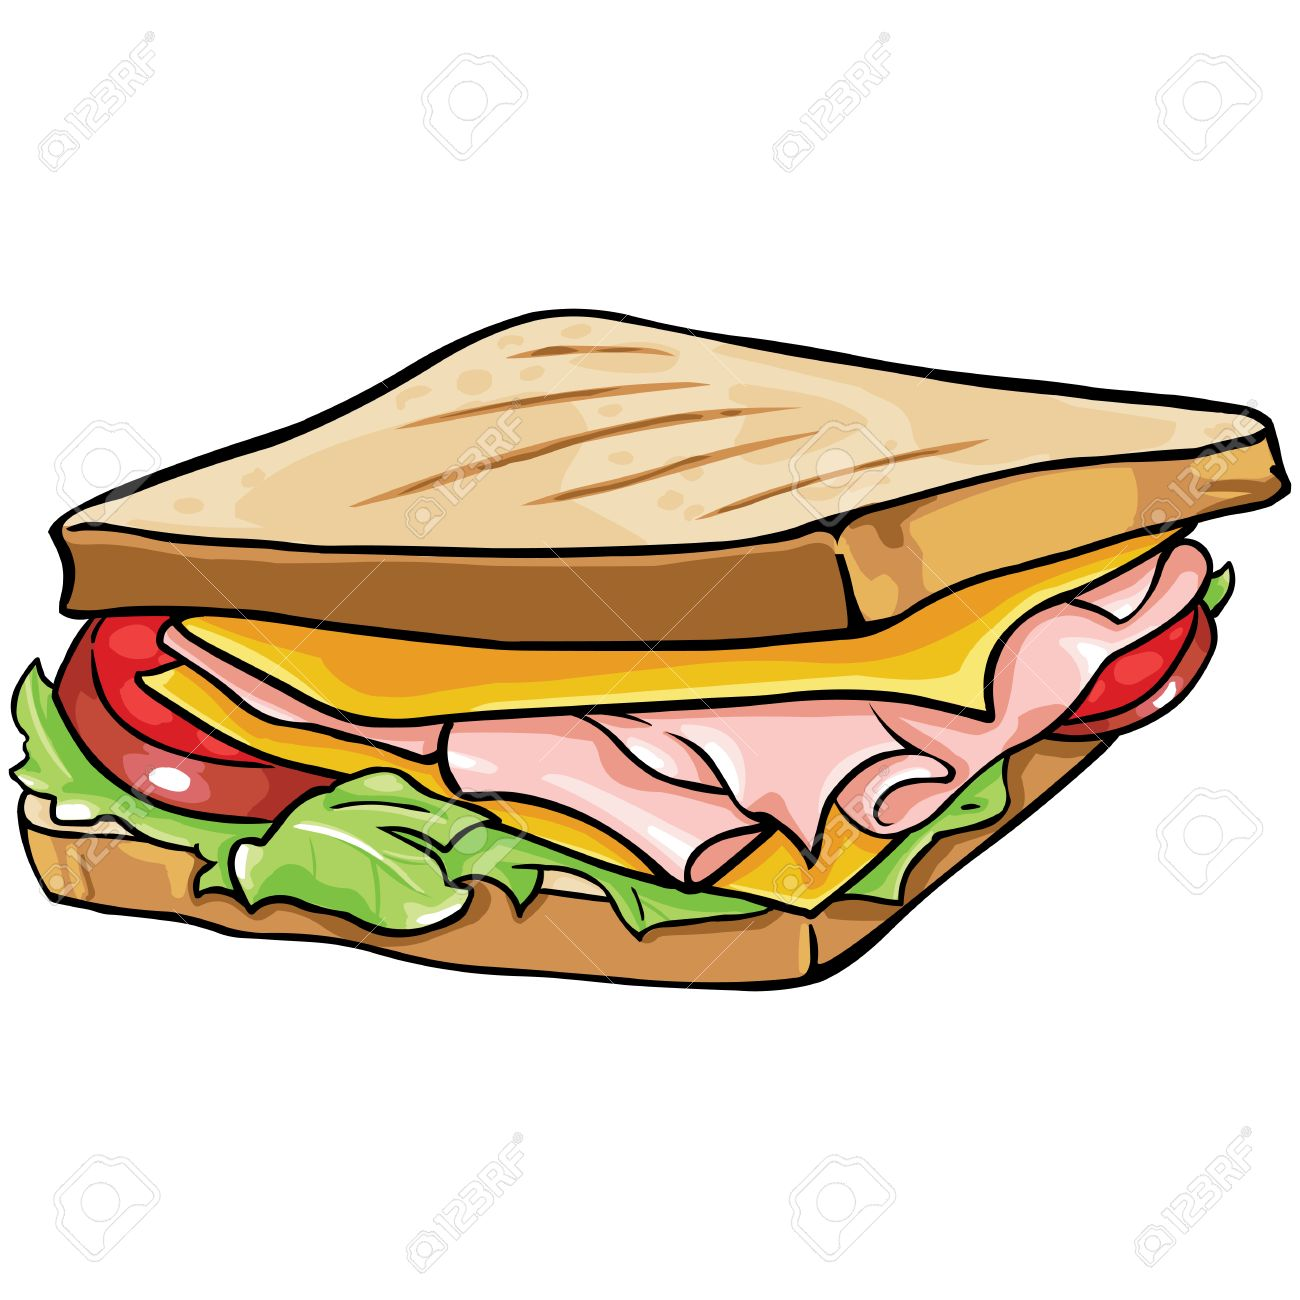 ham sandwich clipart 10 free Cliparts | Download images on ...